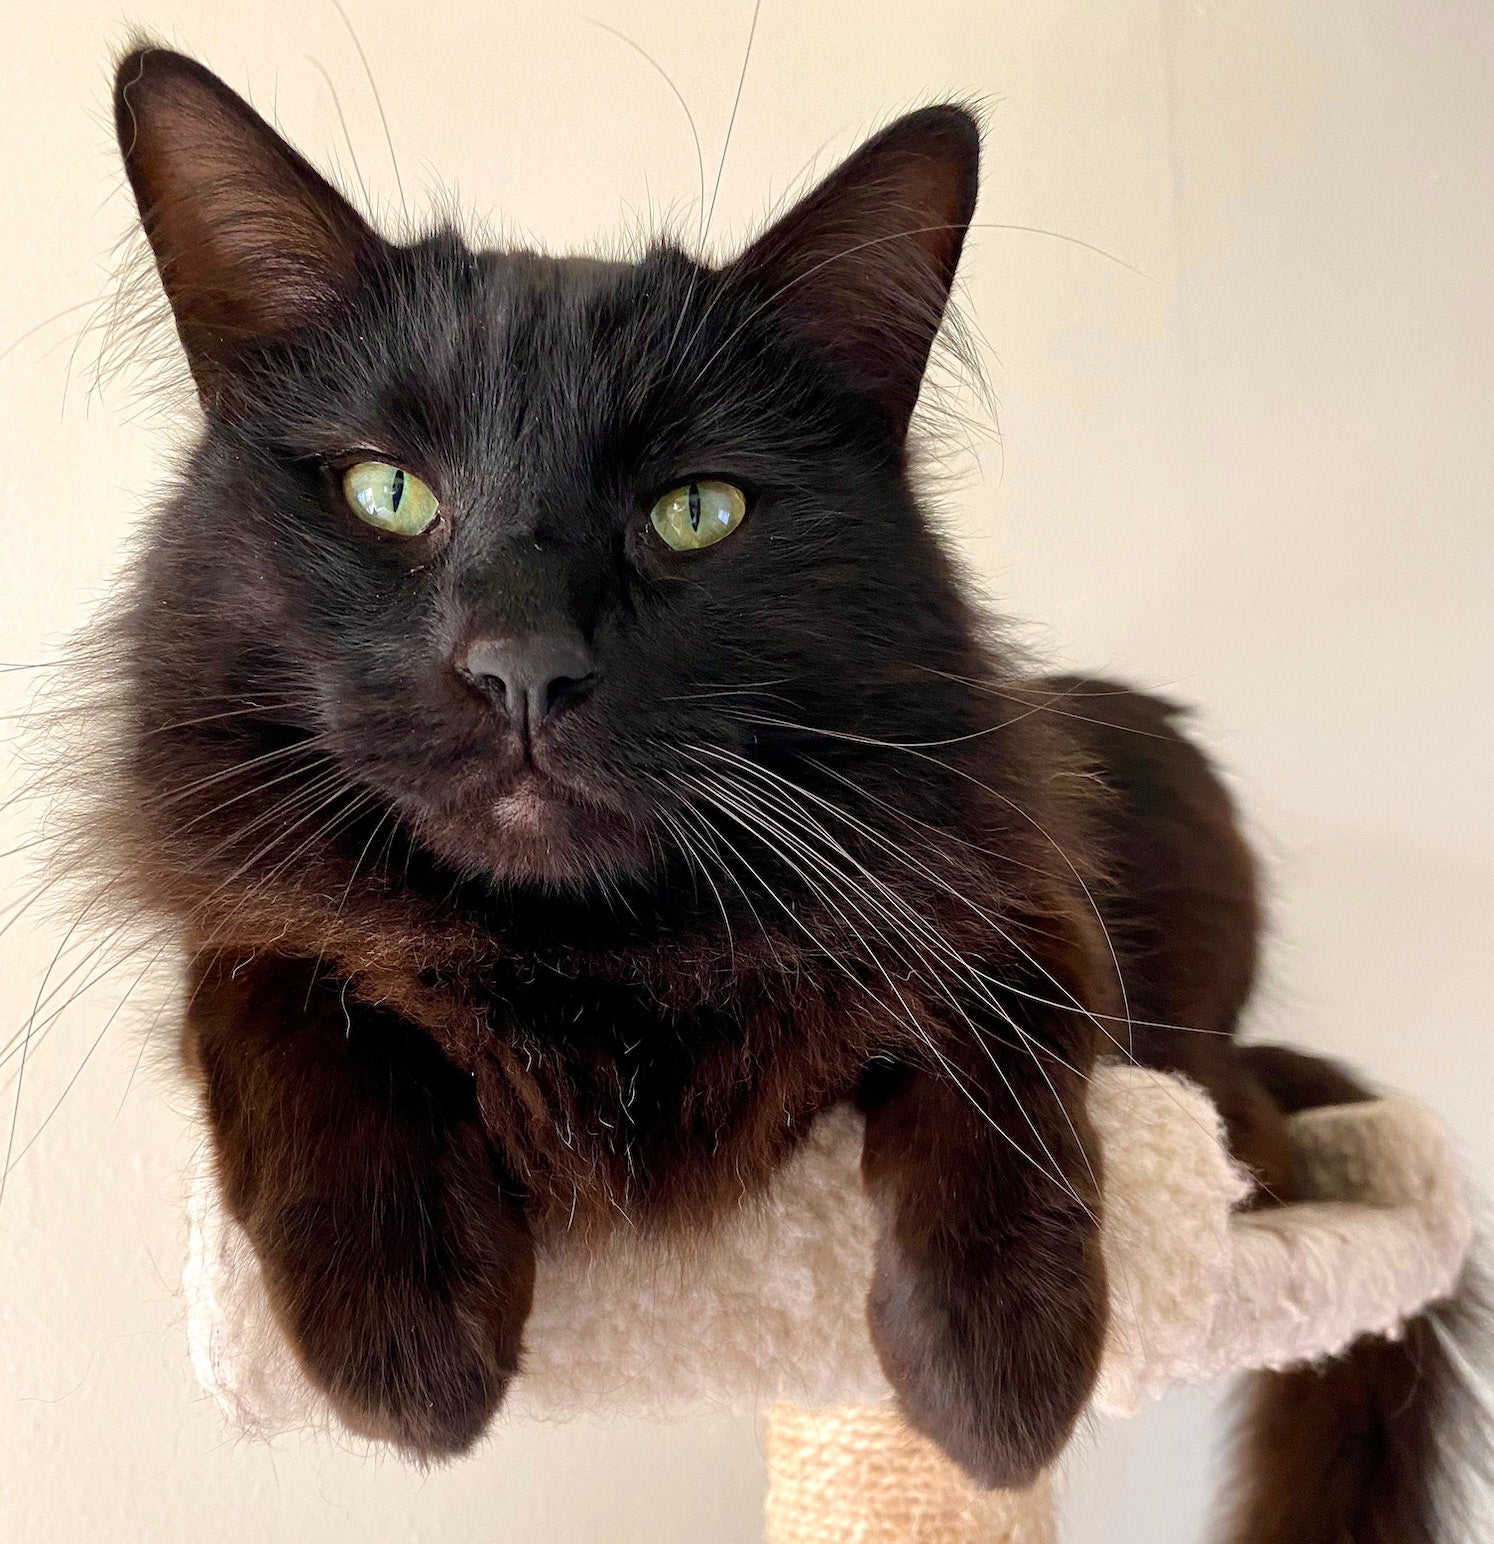 Black cat lying on a platform on a cat tree